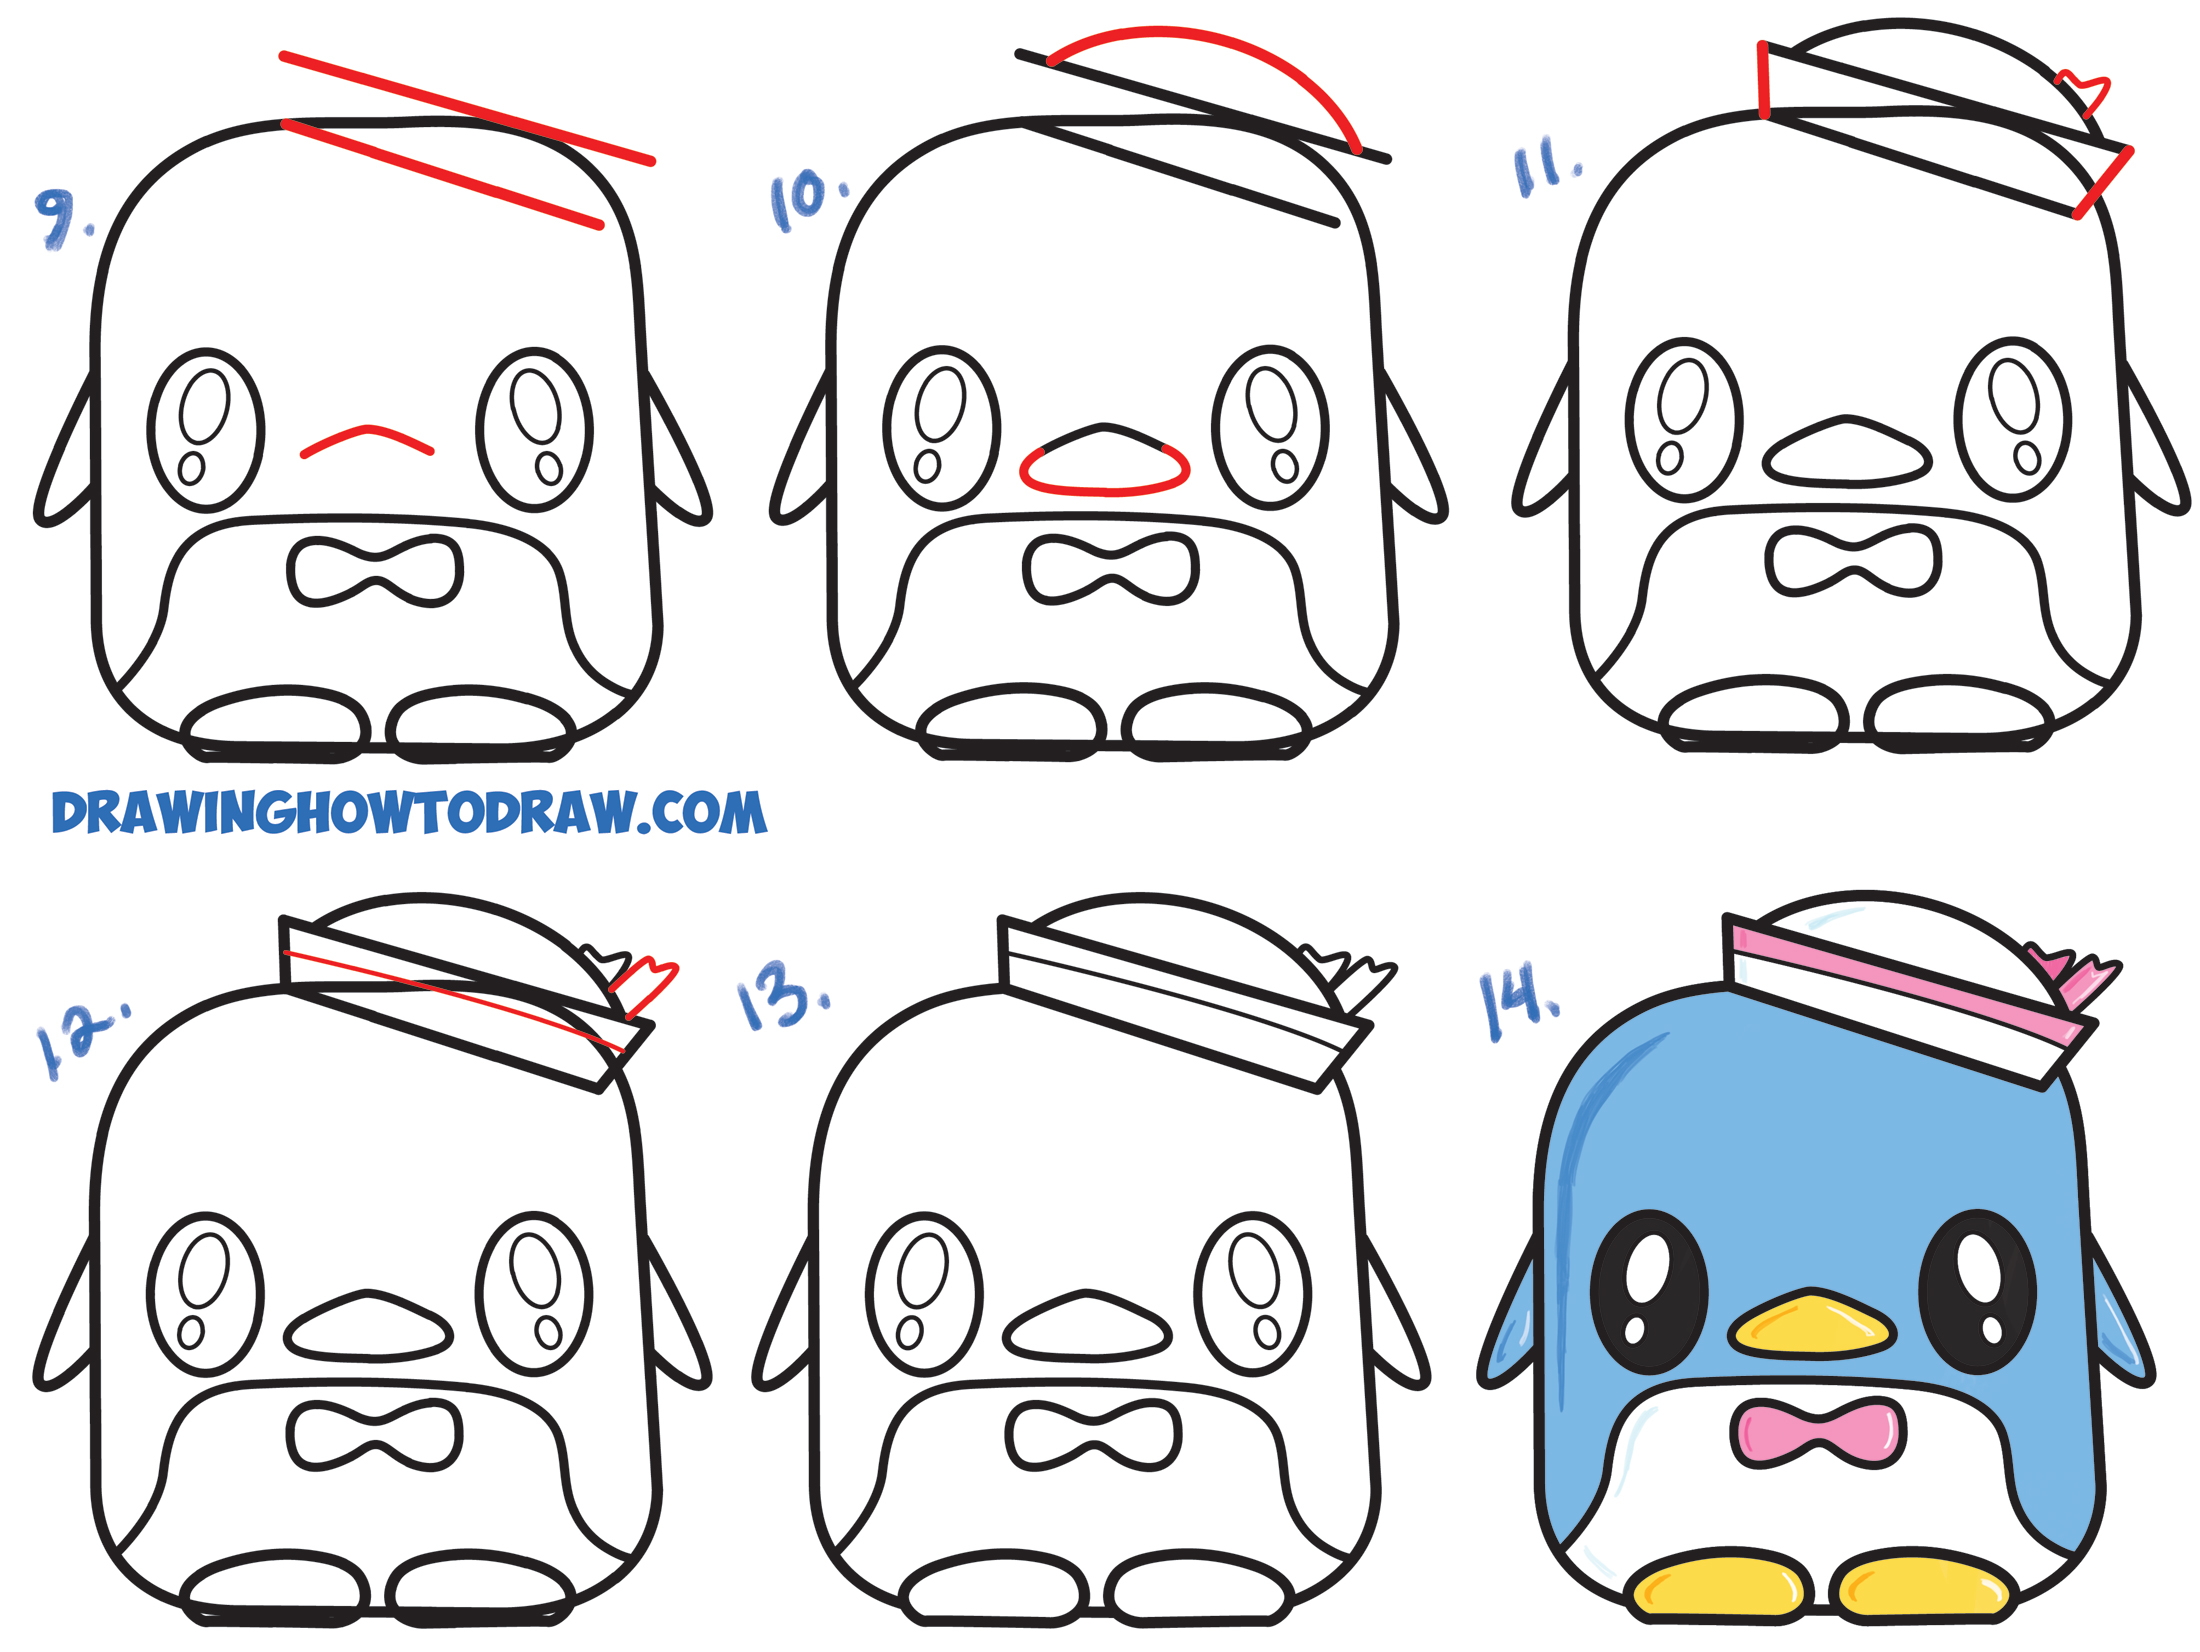 Learn How to Draw Tuxedo Sam (Cute Kawaii Chibi Penguin) From Hello Kitty Simple Steps Drawing Lesson for Kids & Beginners